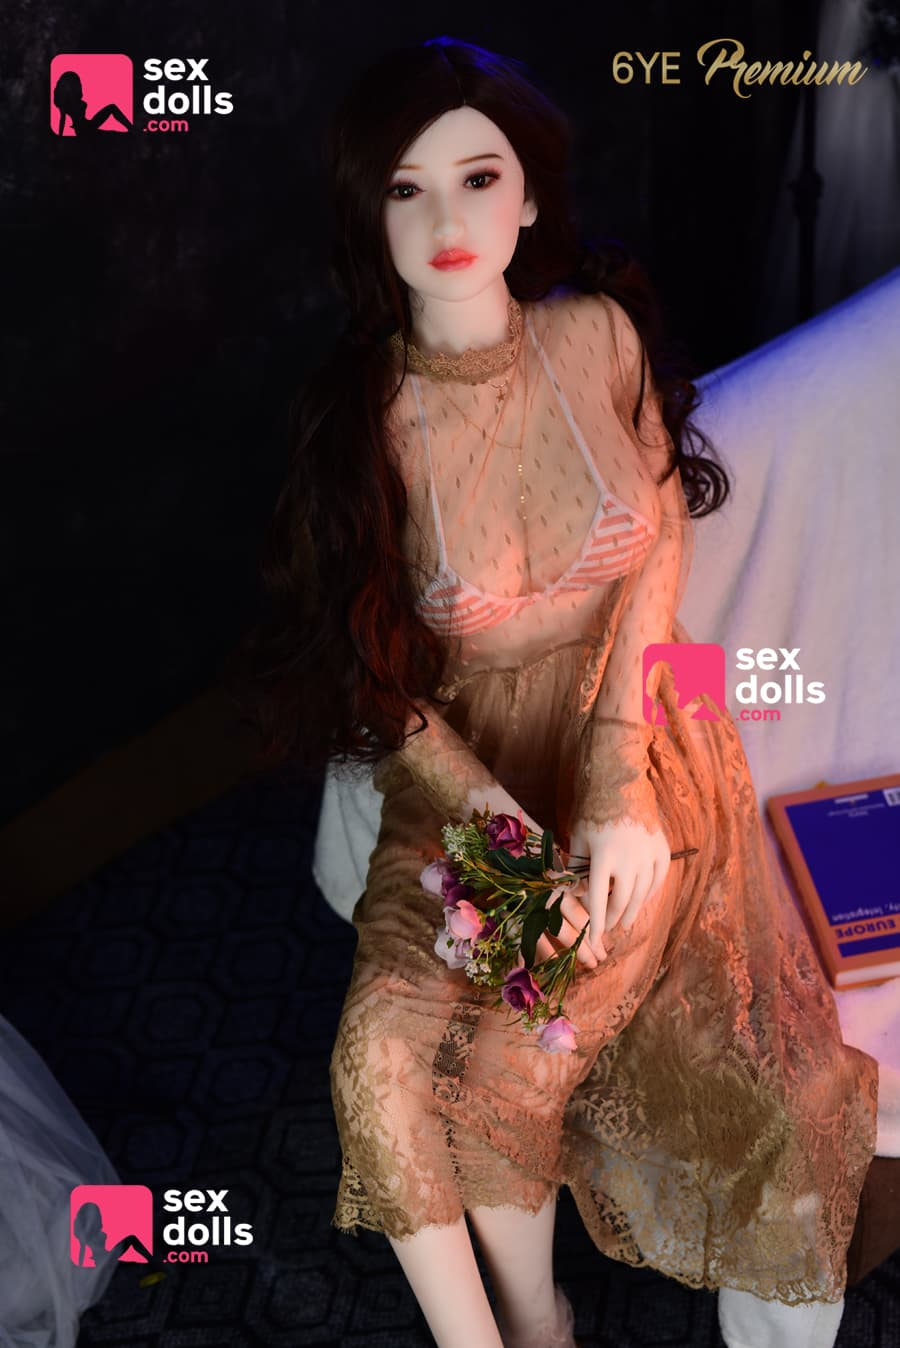 olivia 160cm black hair japanese medium tits skinny tpe sex doll(4)